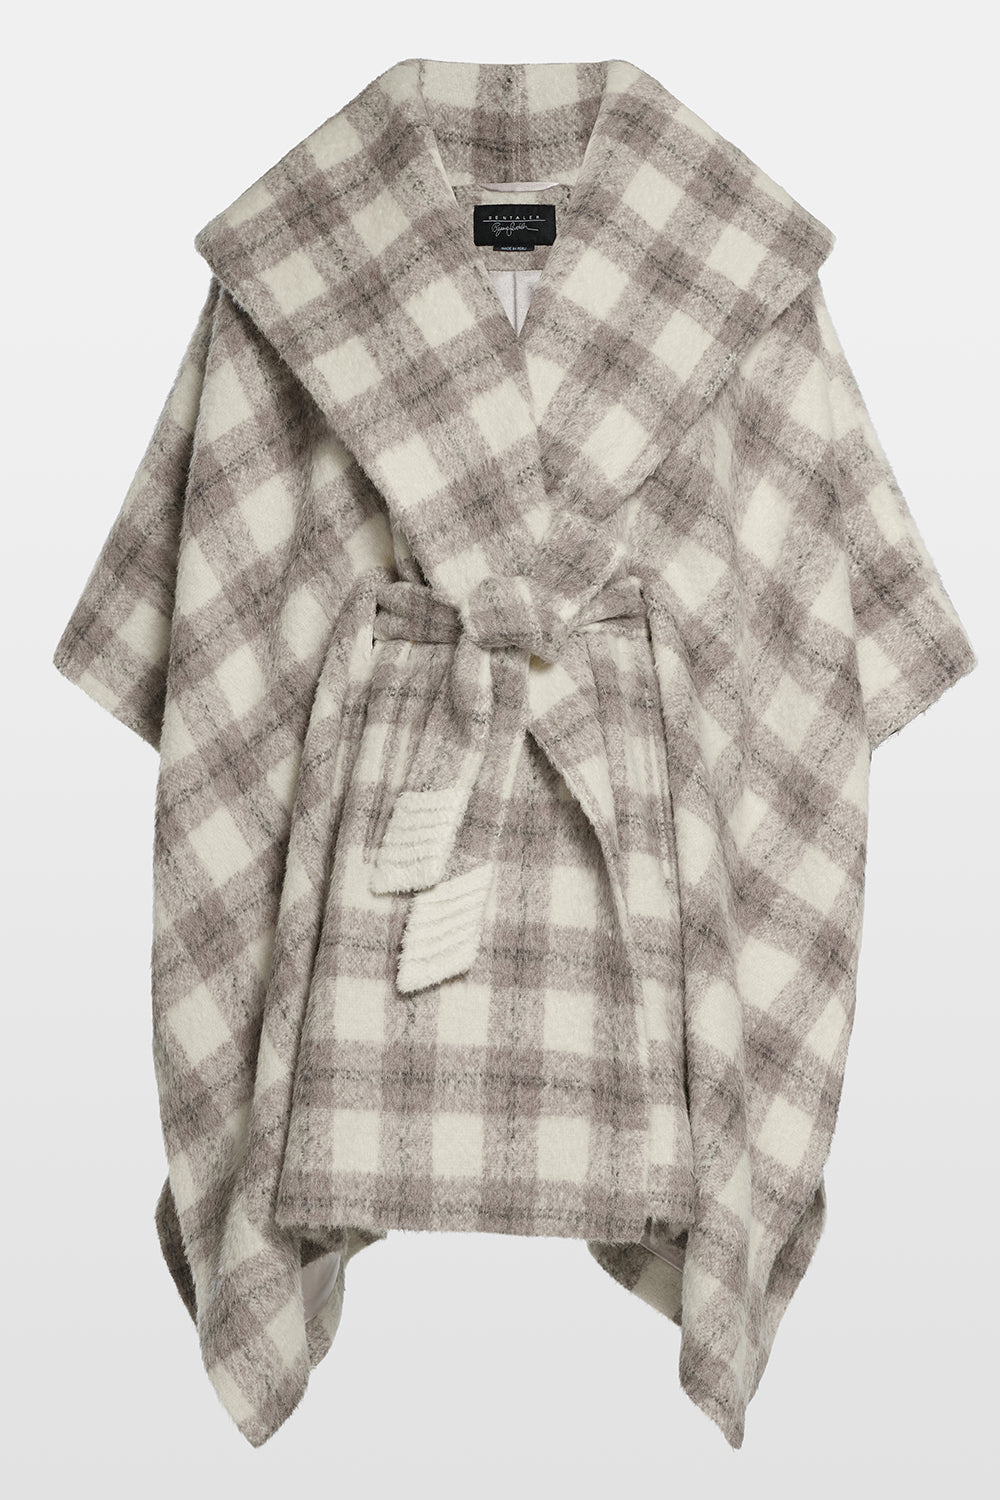 Sentaler Plaid Oversized Hooded Poncho with Belt featured in Suri Alpaca and available in Ecru Plaid. Seen off model.